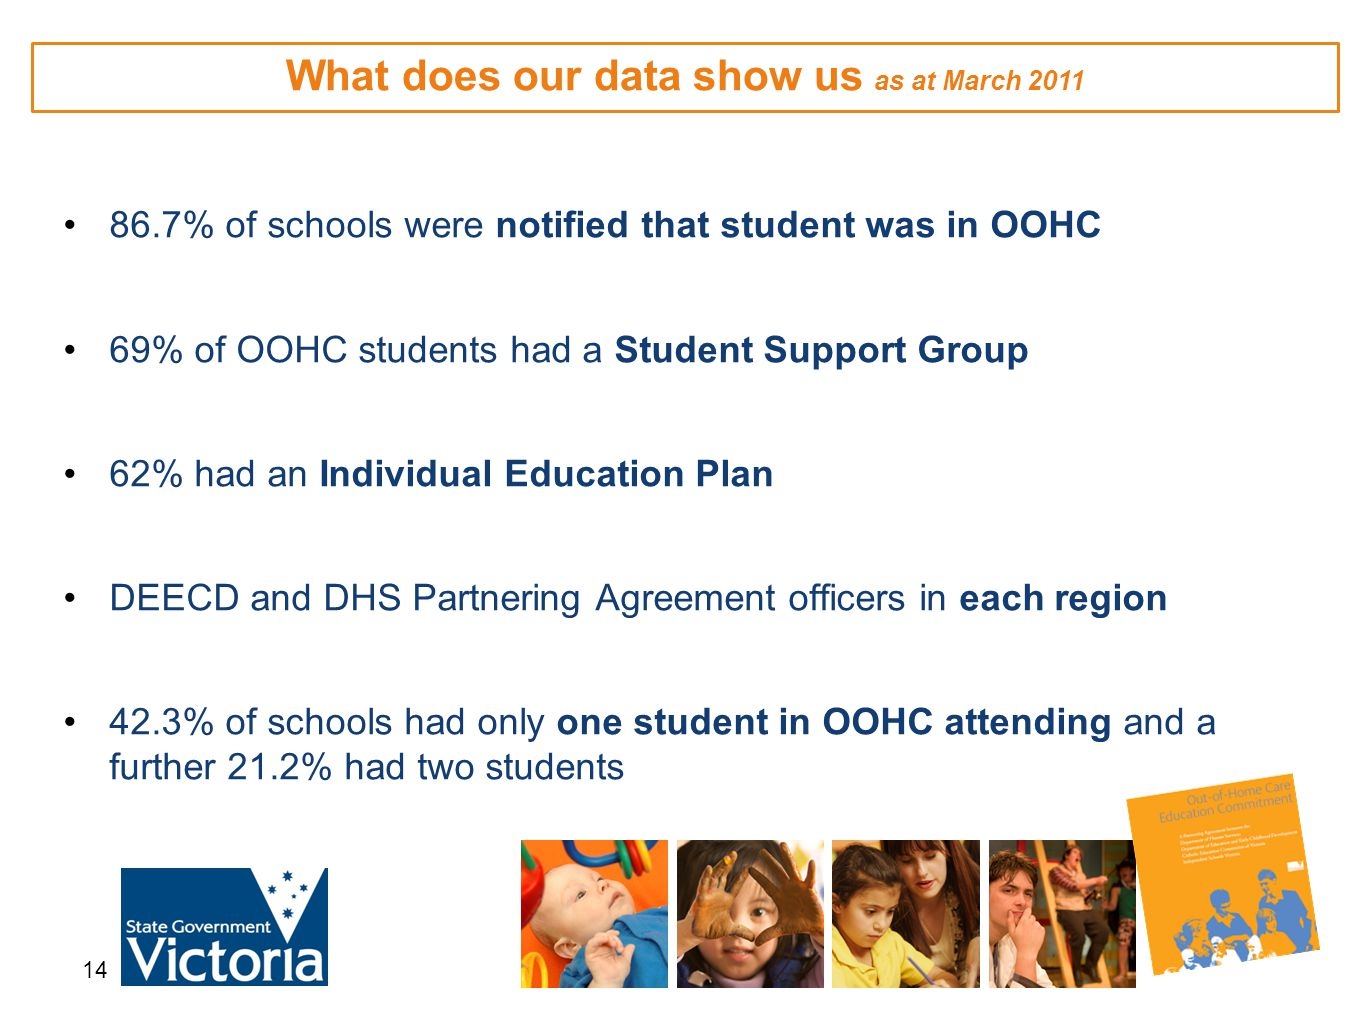 86.7% of schools were notified that student was in OOHC 69% of OOHC students had a Student Support Group 62% had an Individual Education Plan DEECD and DHS Partnering Agreement officers in each region 42.3% of schools had only one student in OOHC attending and a further 21.2% had two students 14 What does our data show us as at March 2011